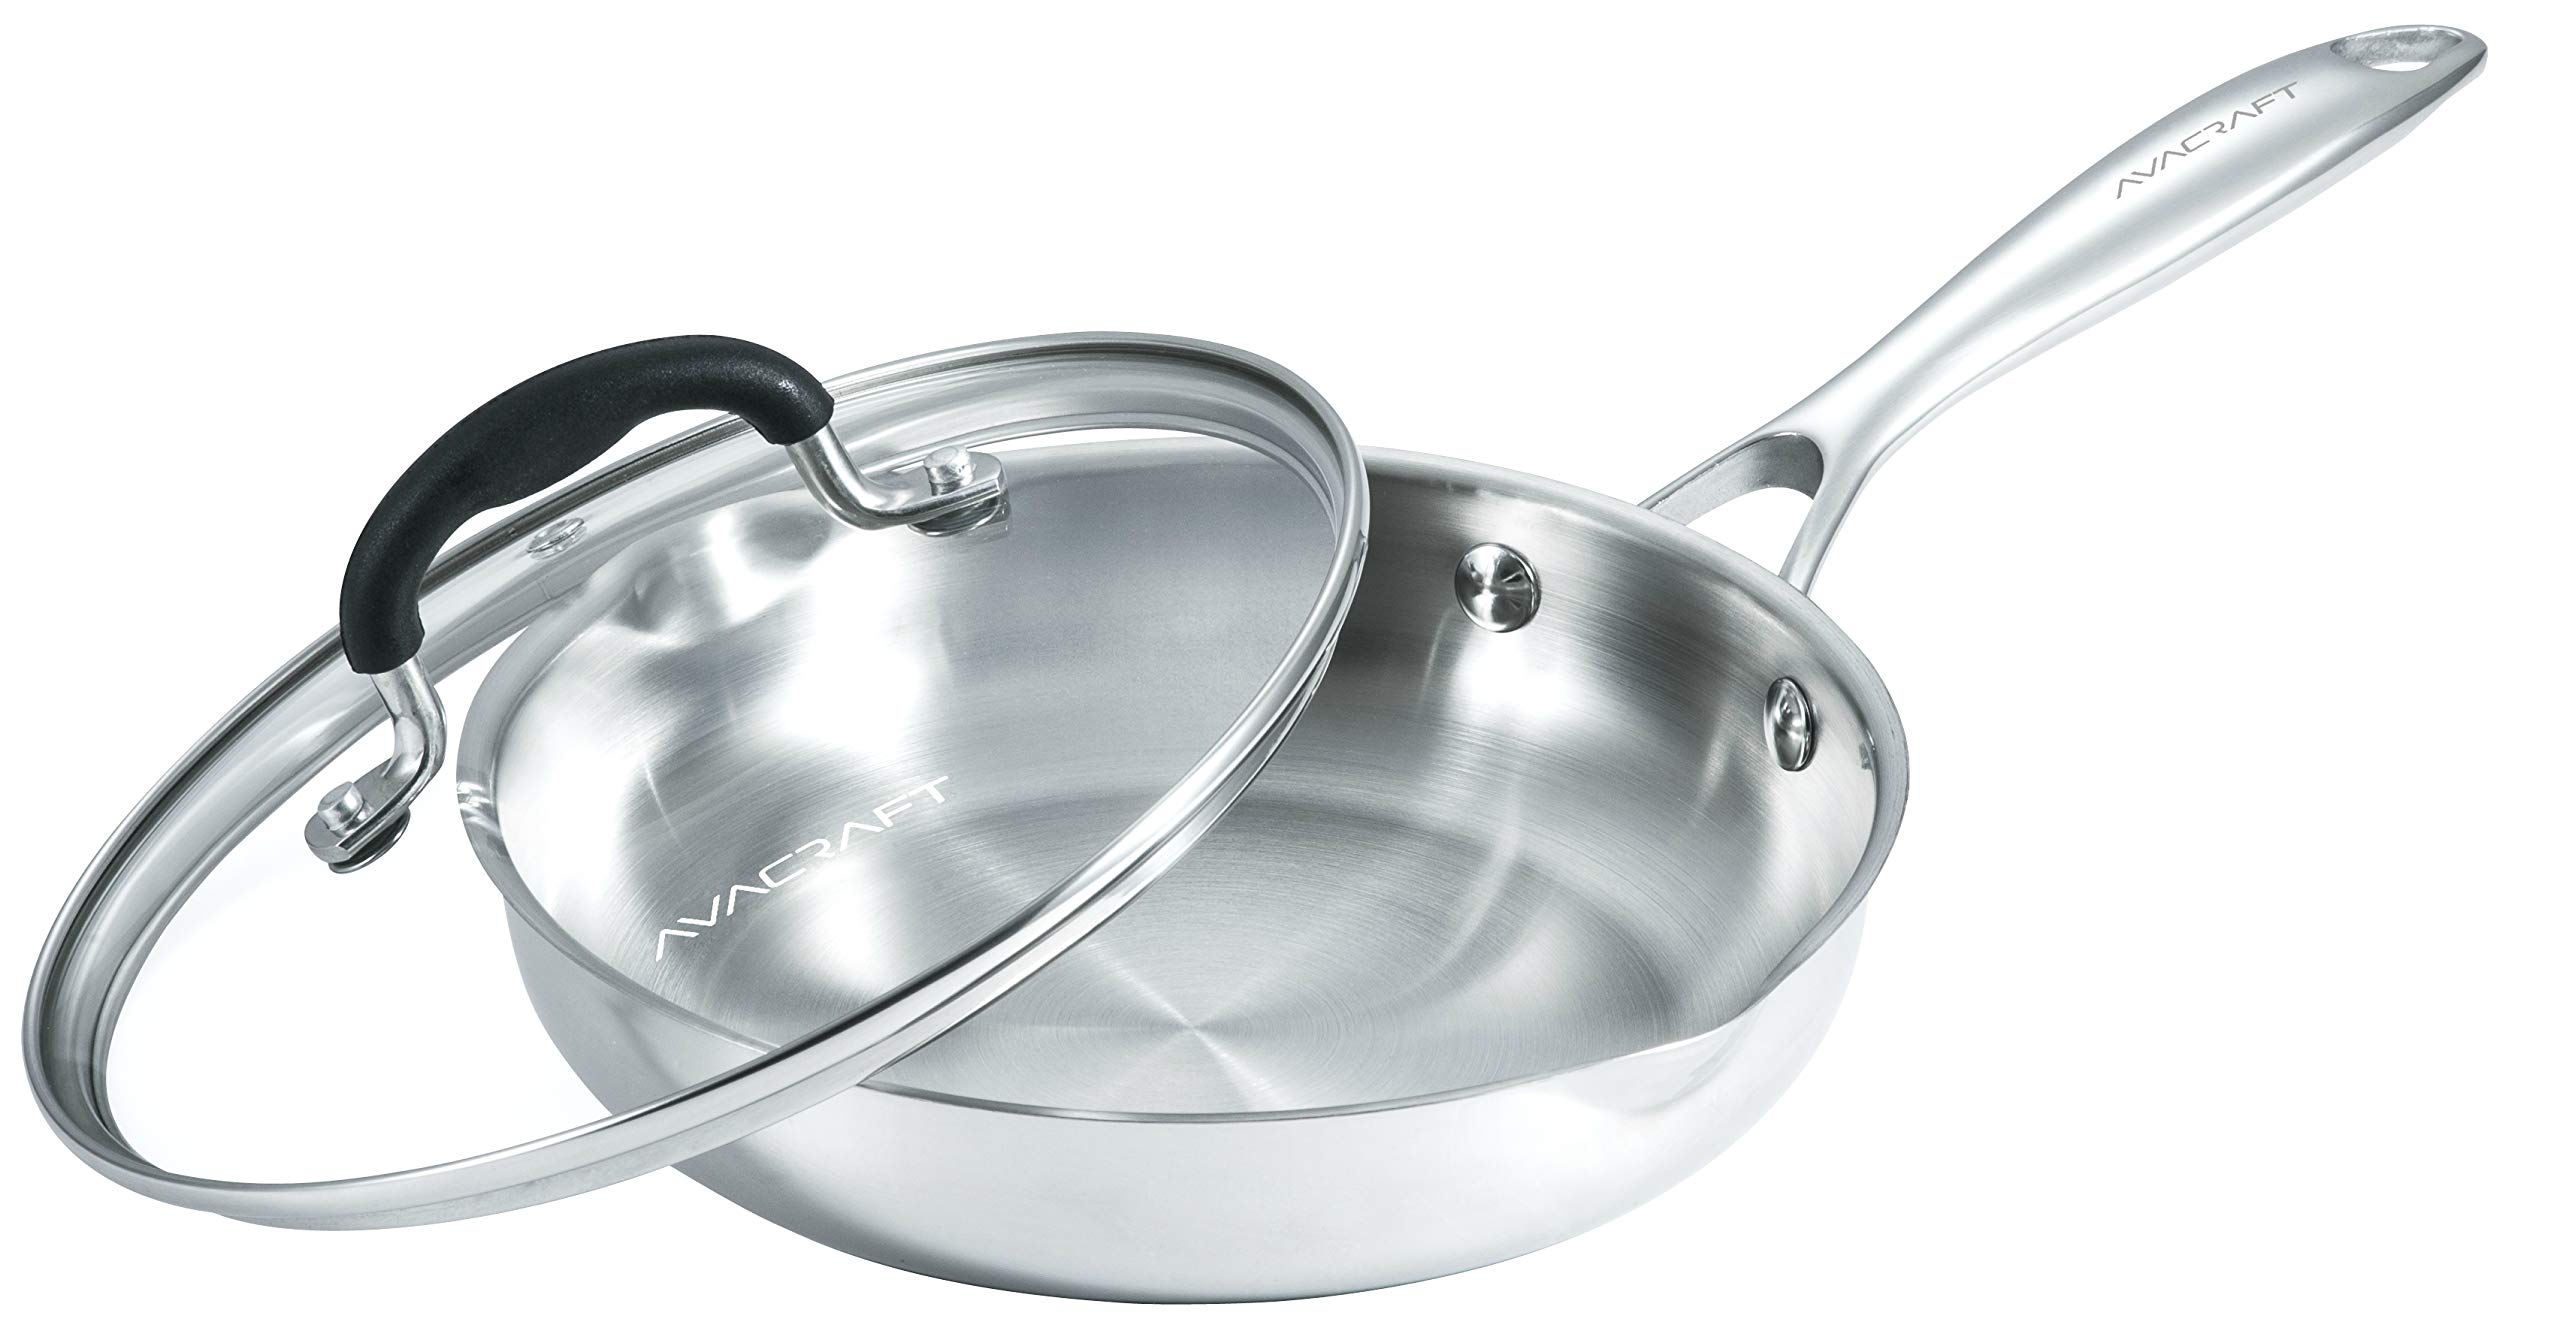 AVACRAFT 18/10 Stainless Steel Frying Pan with Glass Lid, Two Side Spouts for Easy Pour and Ergonomic Handle, Fry Pan (Tri-Ply Capsule Bottom, 8 Inch)